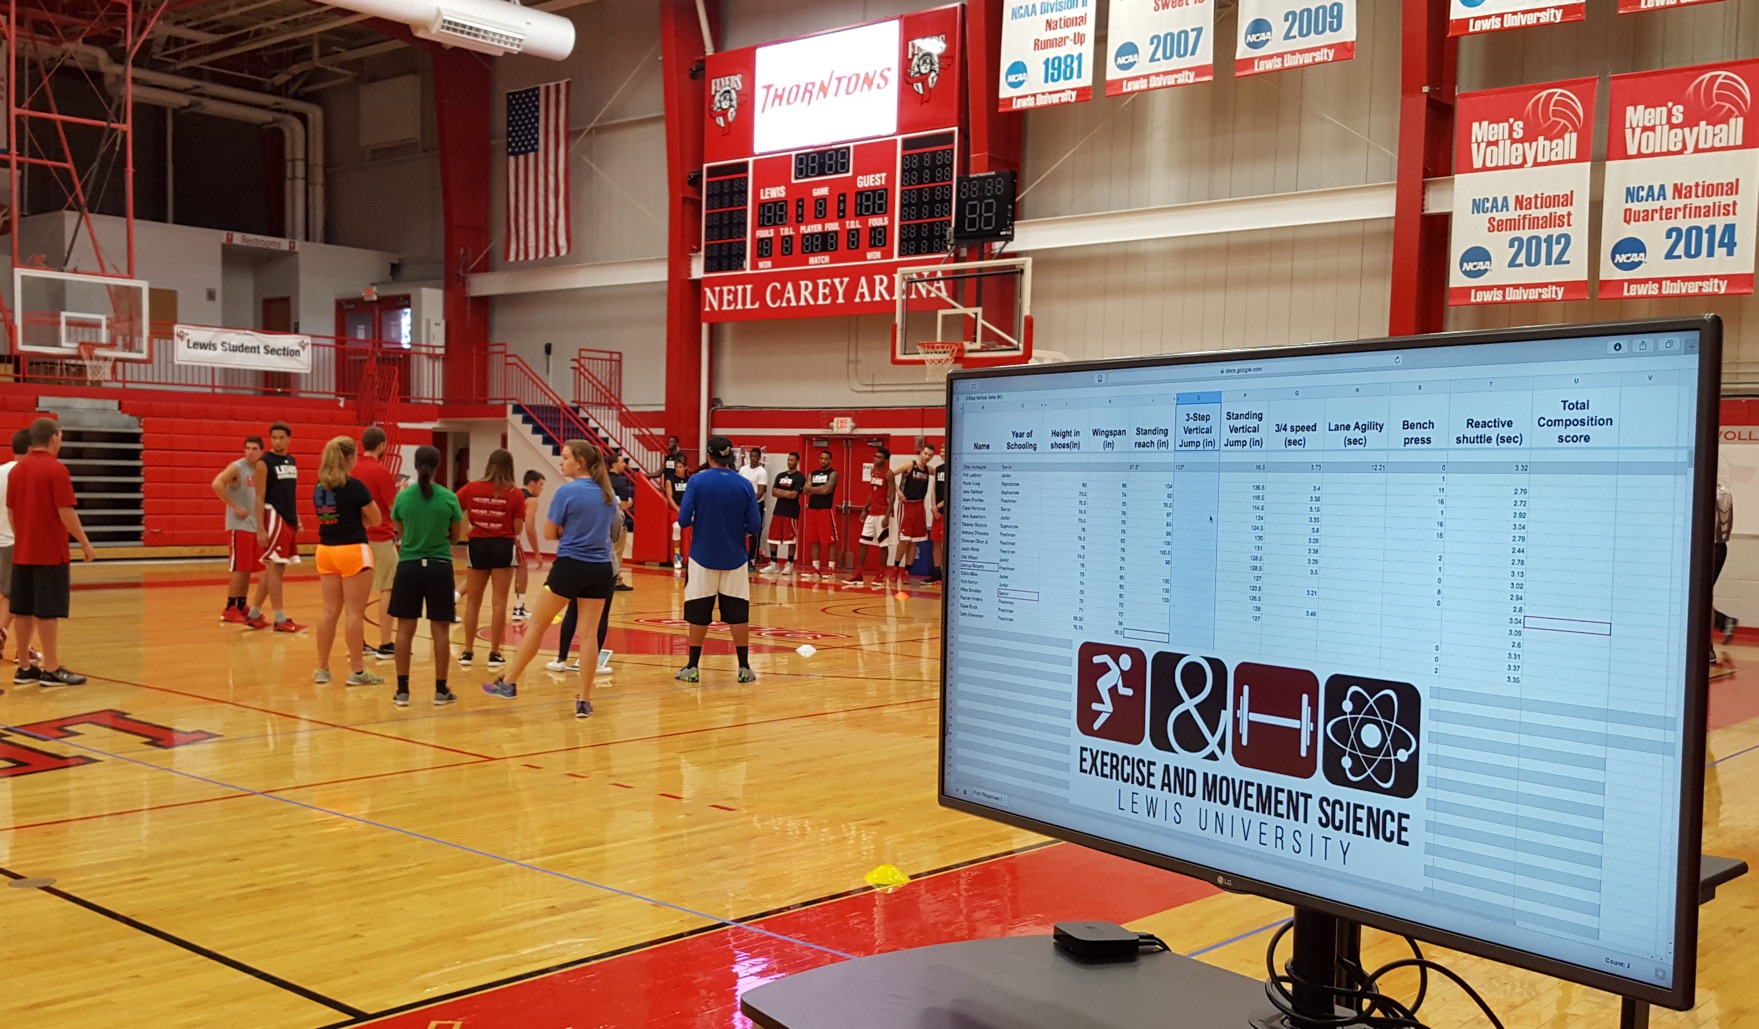 What is an Athletic Combine and why are Lewis University students working them?